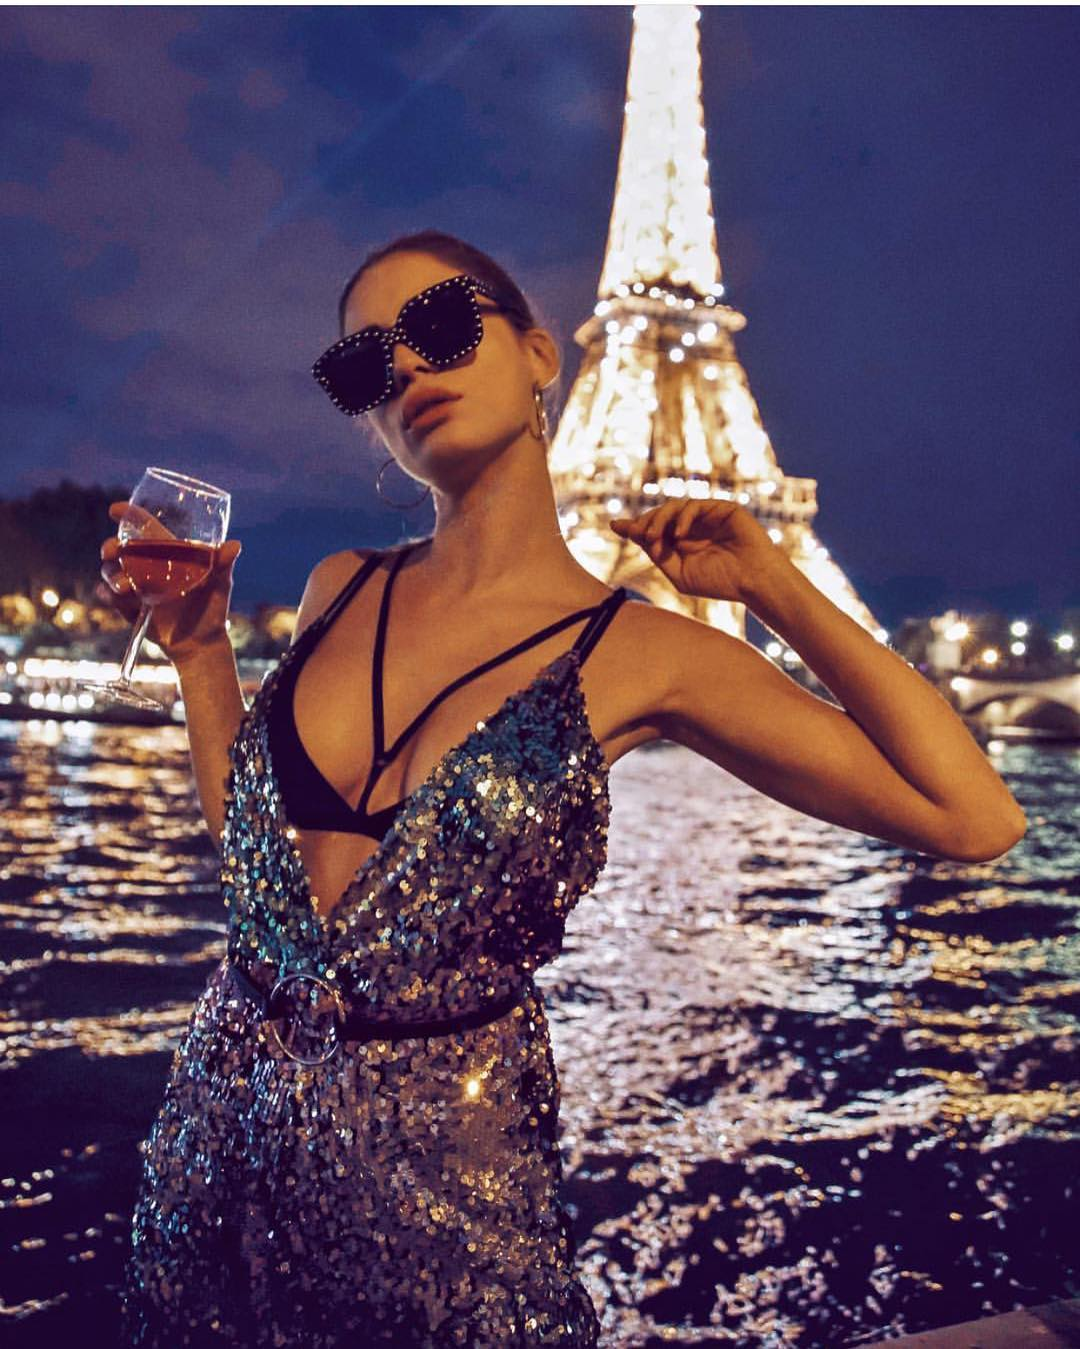 Shiny Sequined V Neck Dress For Parisian Night Outs 2020